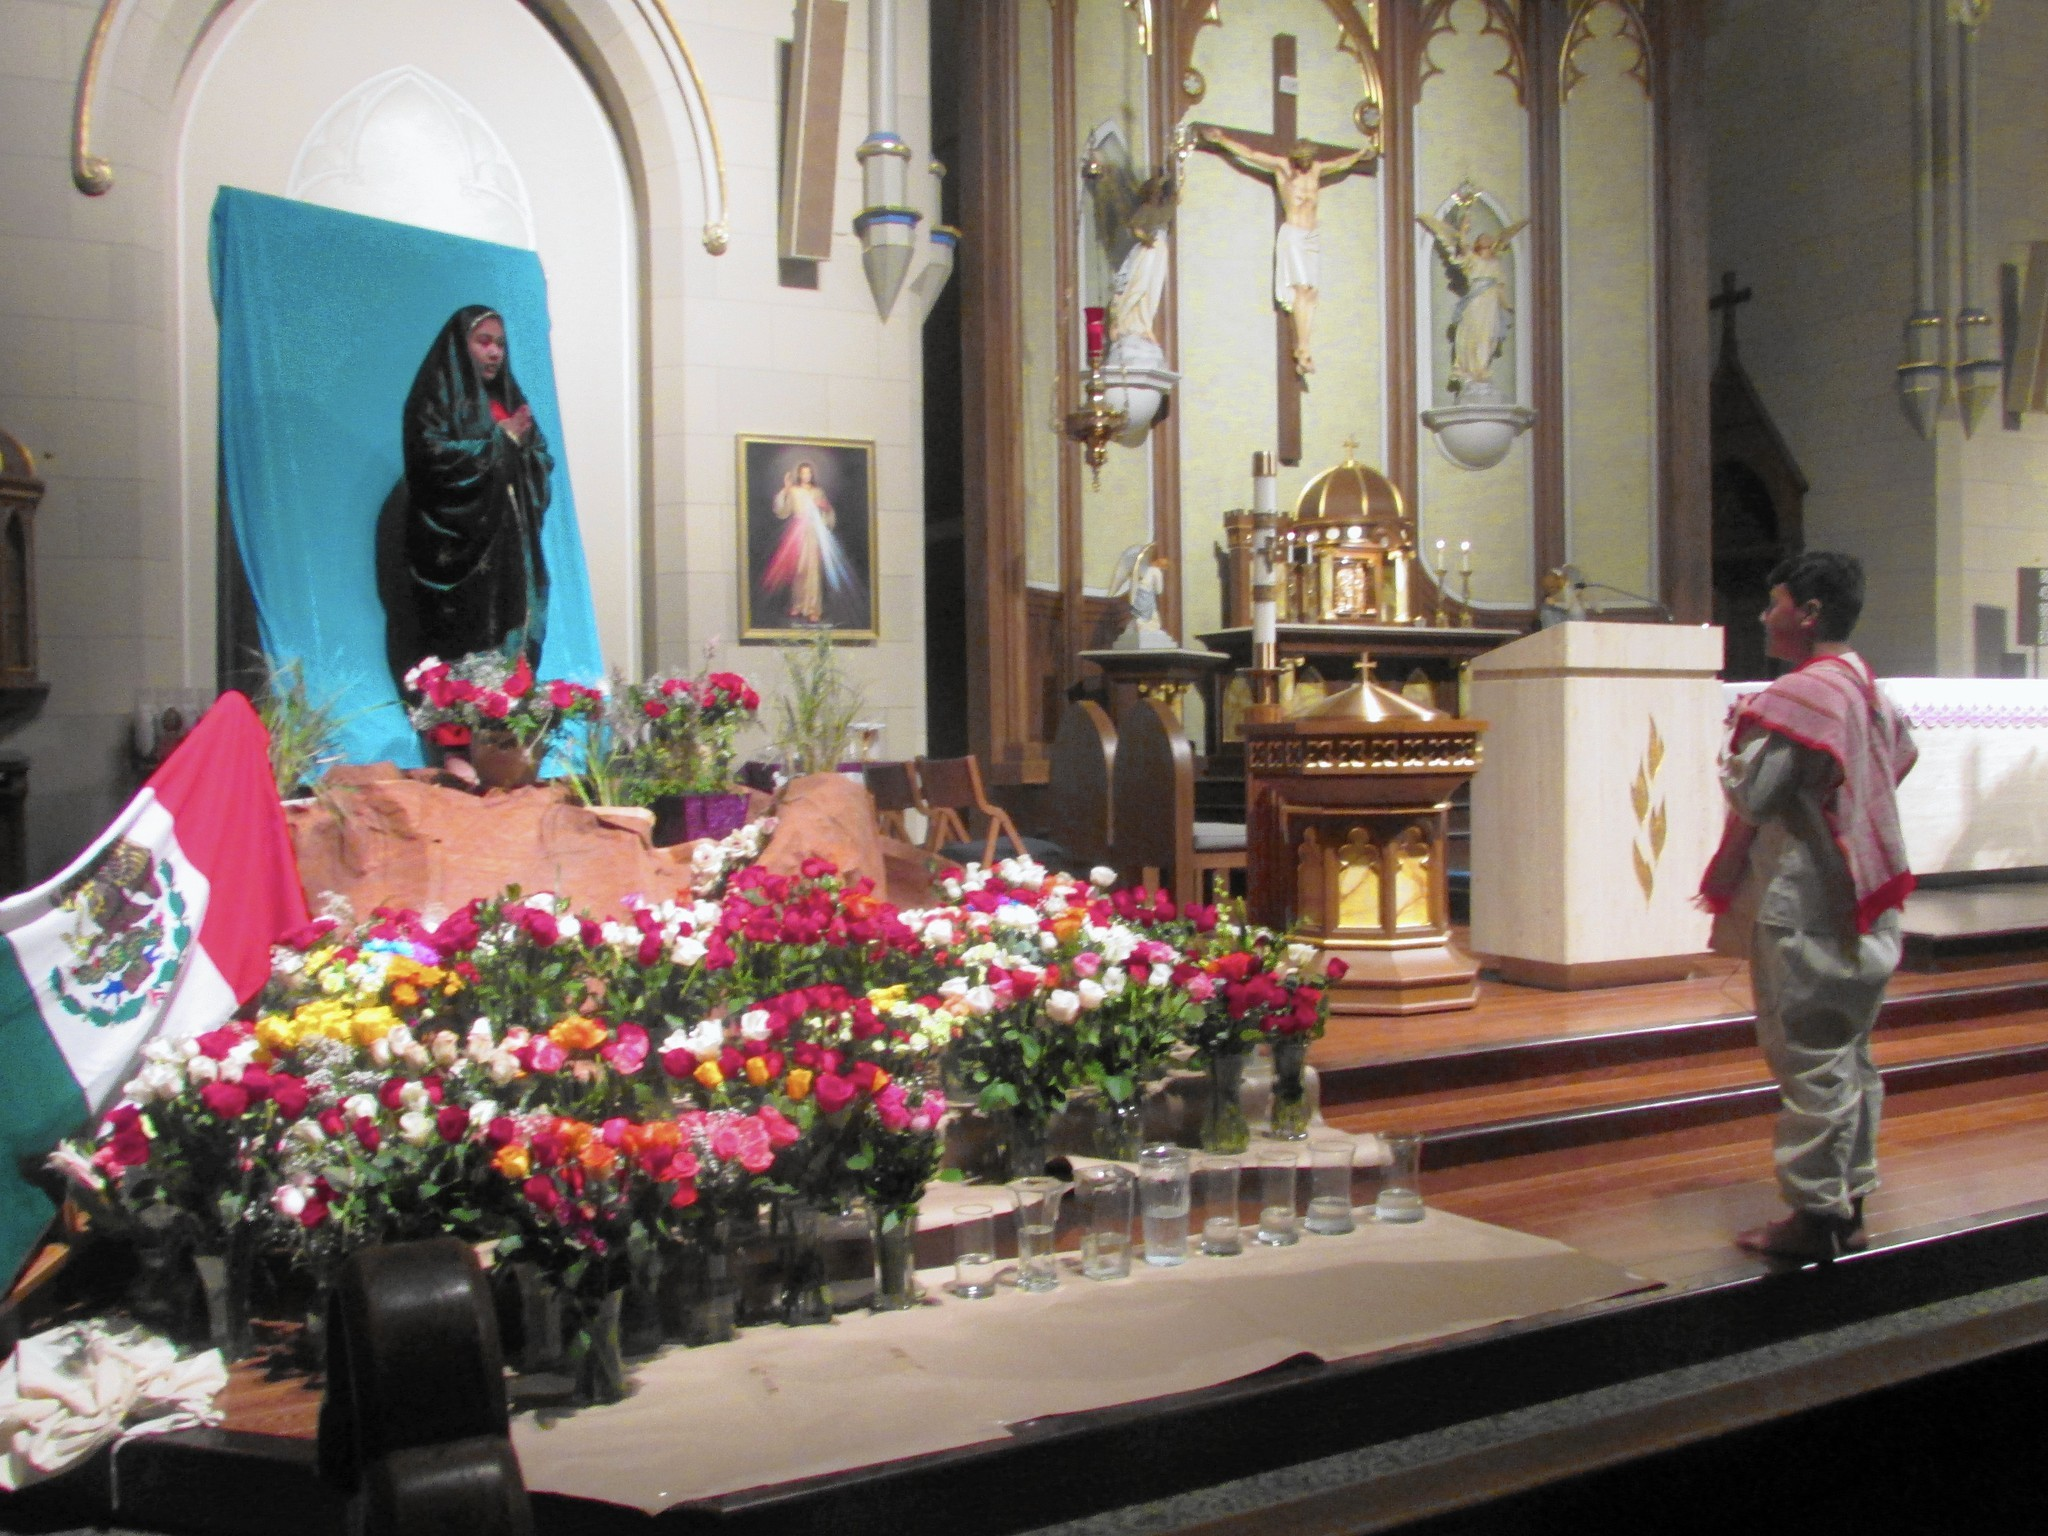 the significance of nuestra senora de guadalupe in mexico Parroquia de nuestra señora de guadalupe is a religious organization located in salamanca, mexico view phone number, employees, products, revenue, and more.